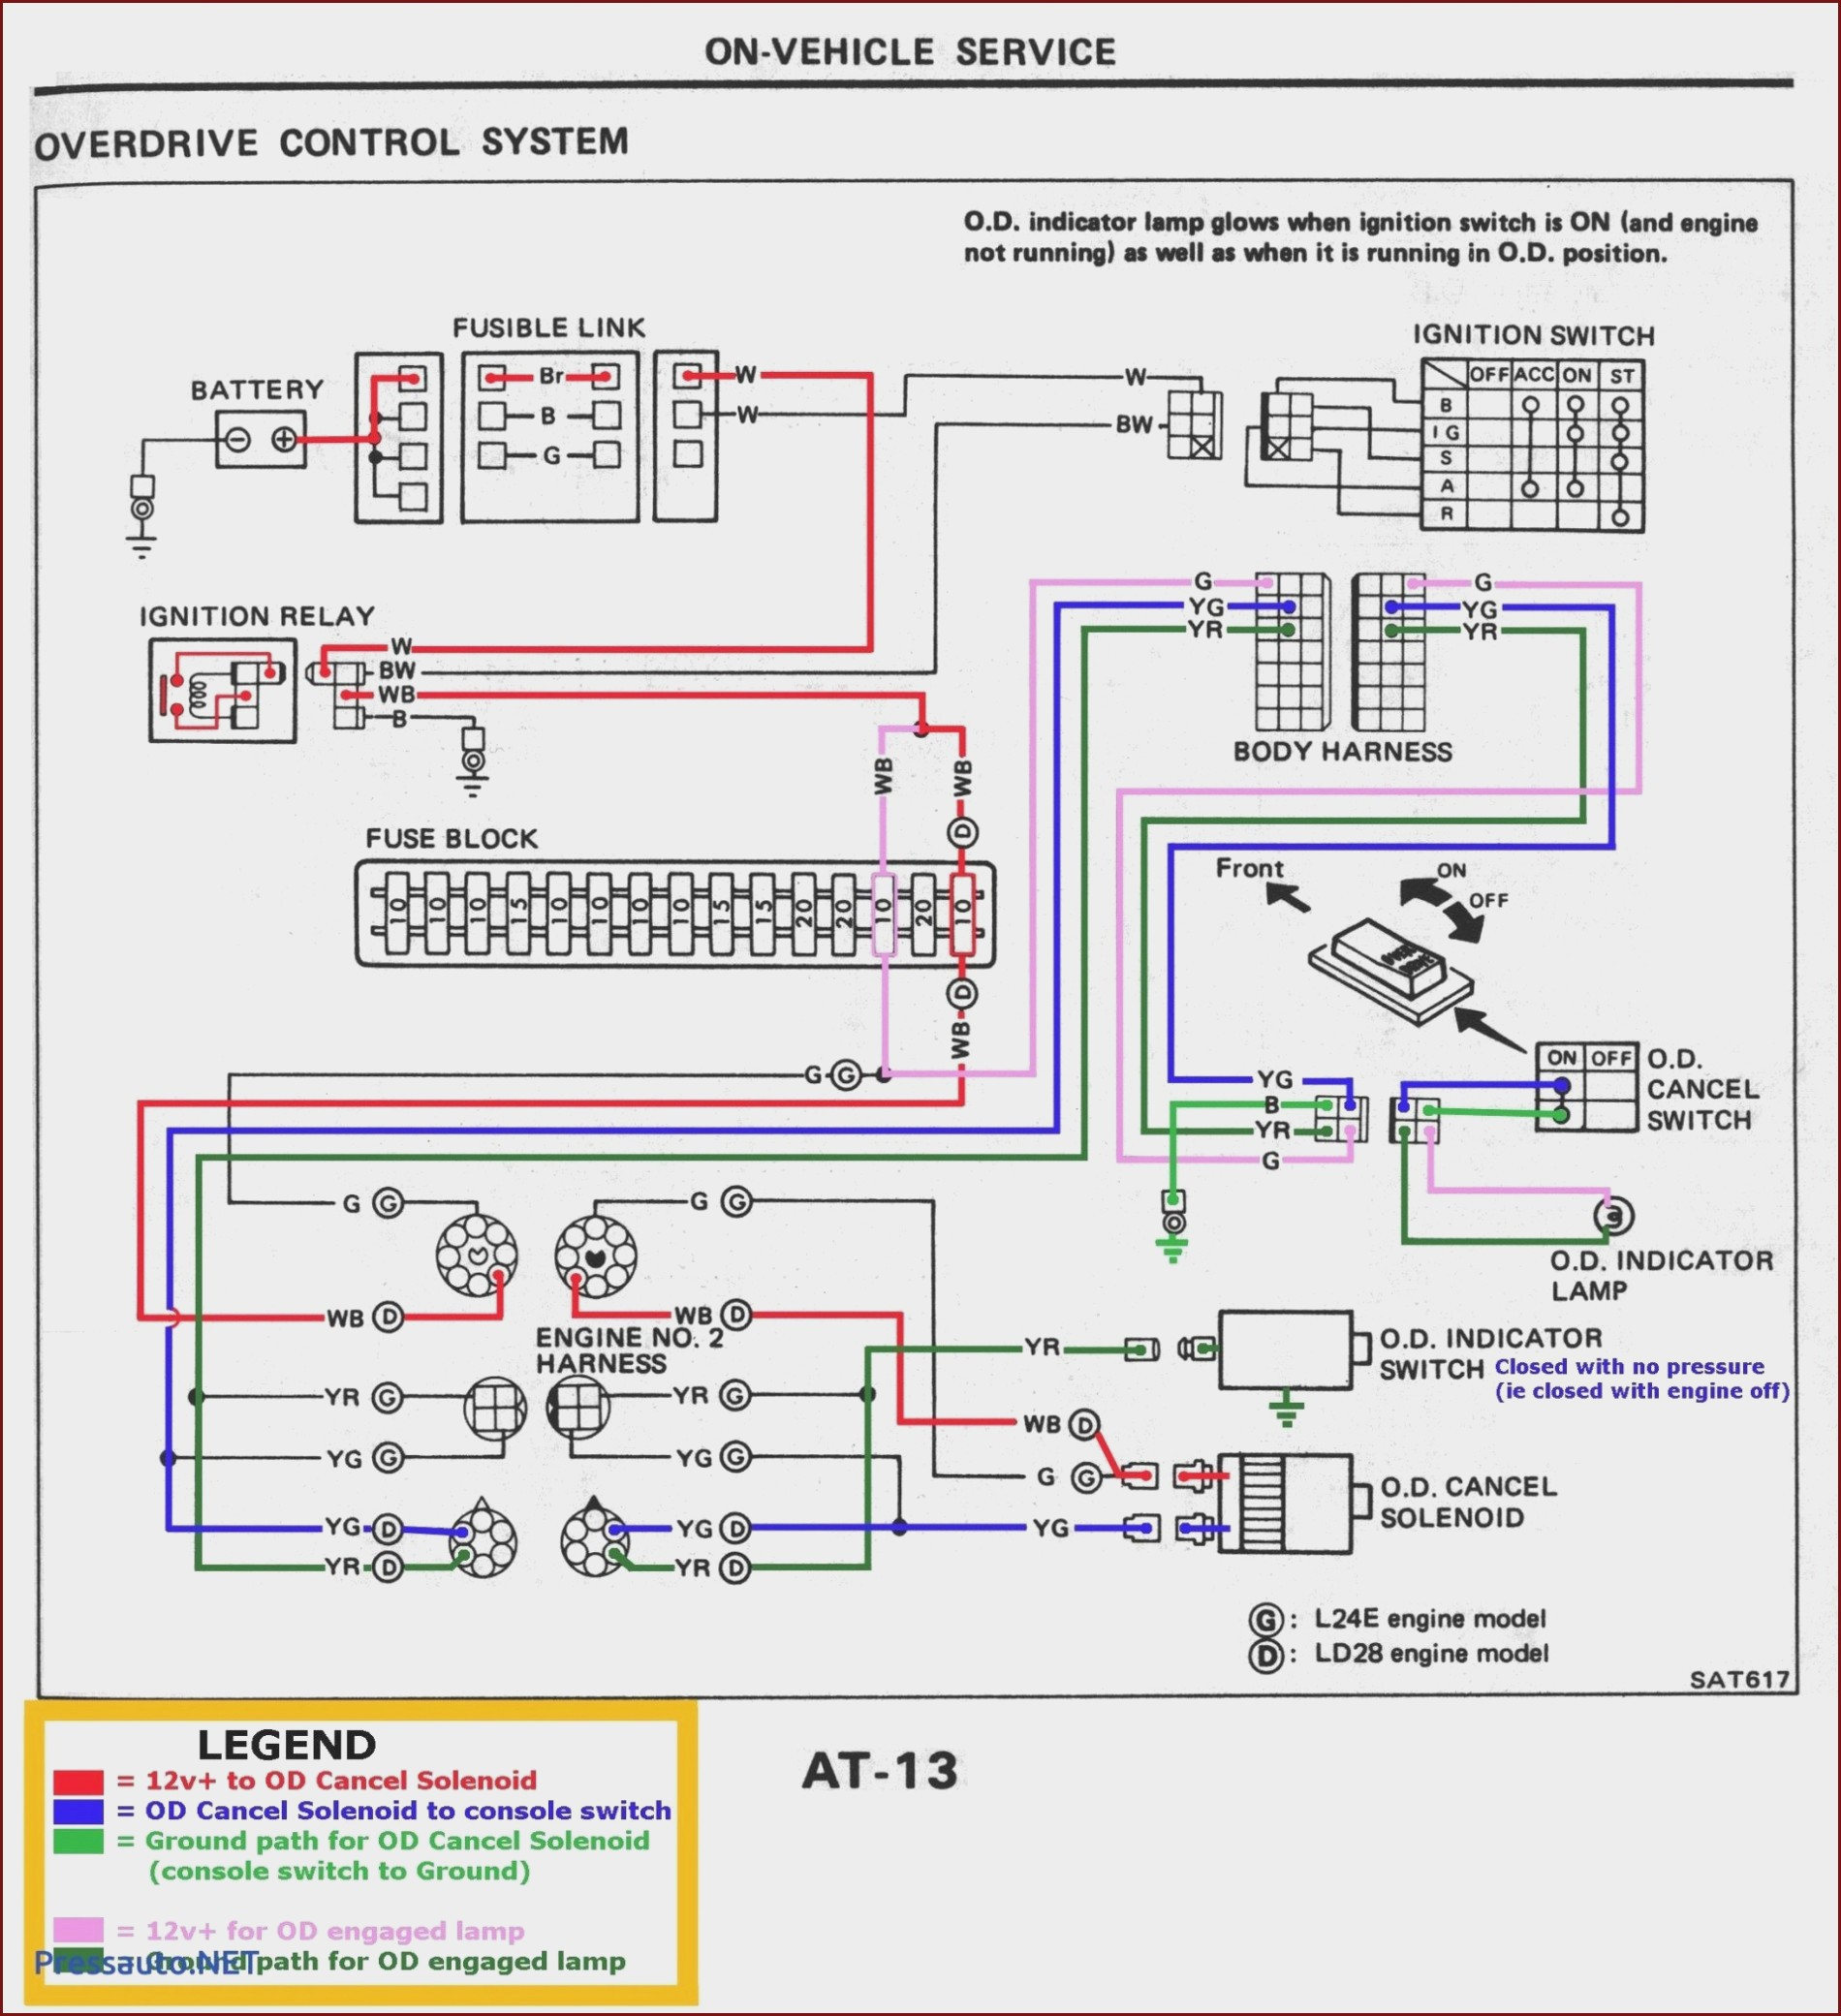 Genie Garage Door Sensor Wiring Diagram Omc E250 Fpxsif Wiring Diagram Wiring Diagram Options Of Genie Garage Door Sensor Wiring Diagram Genie Sensor Wiring